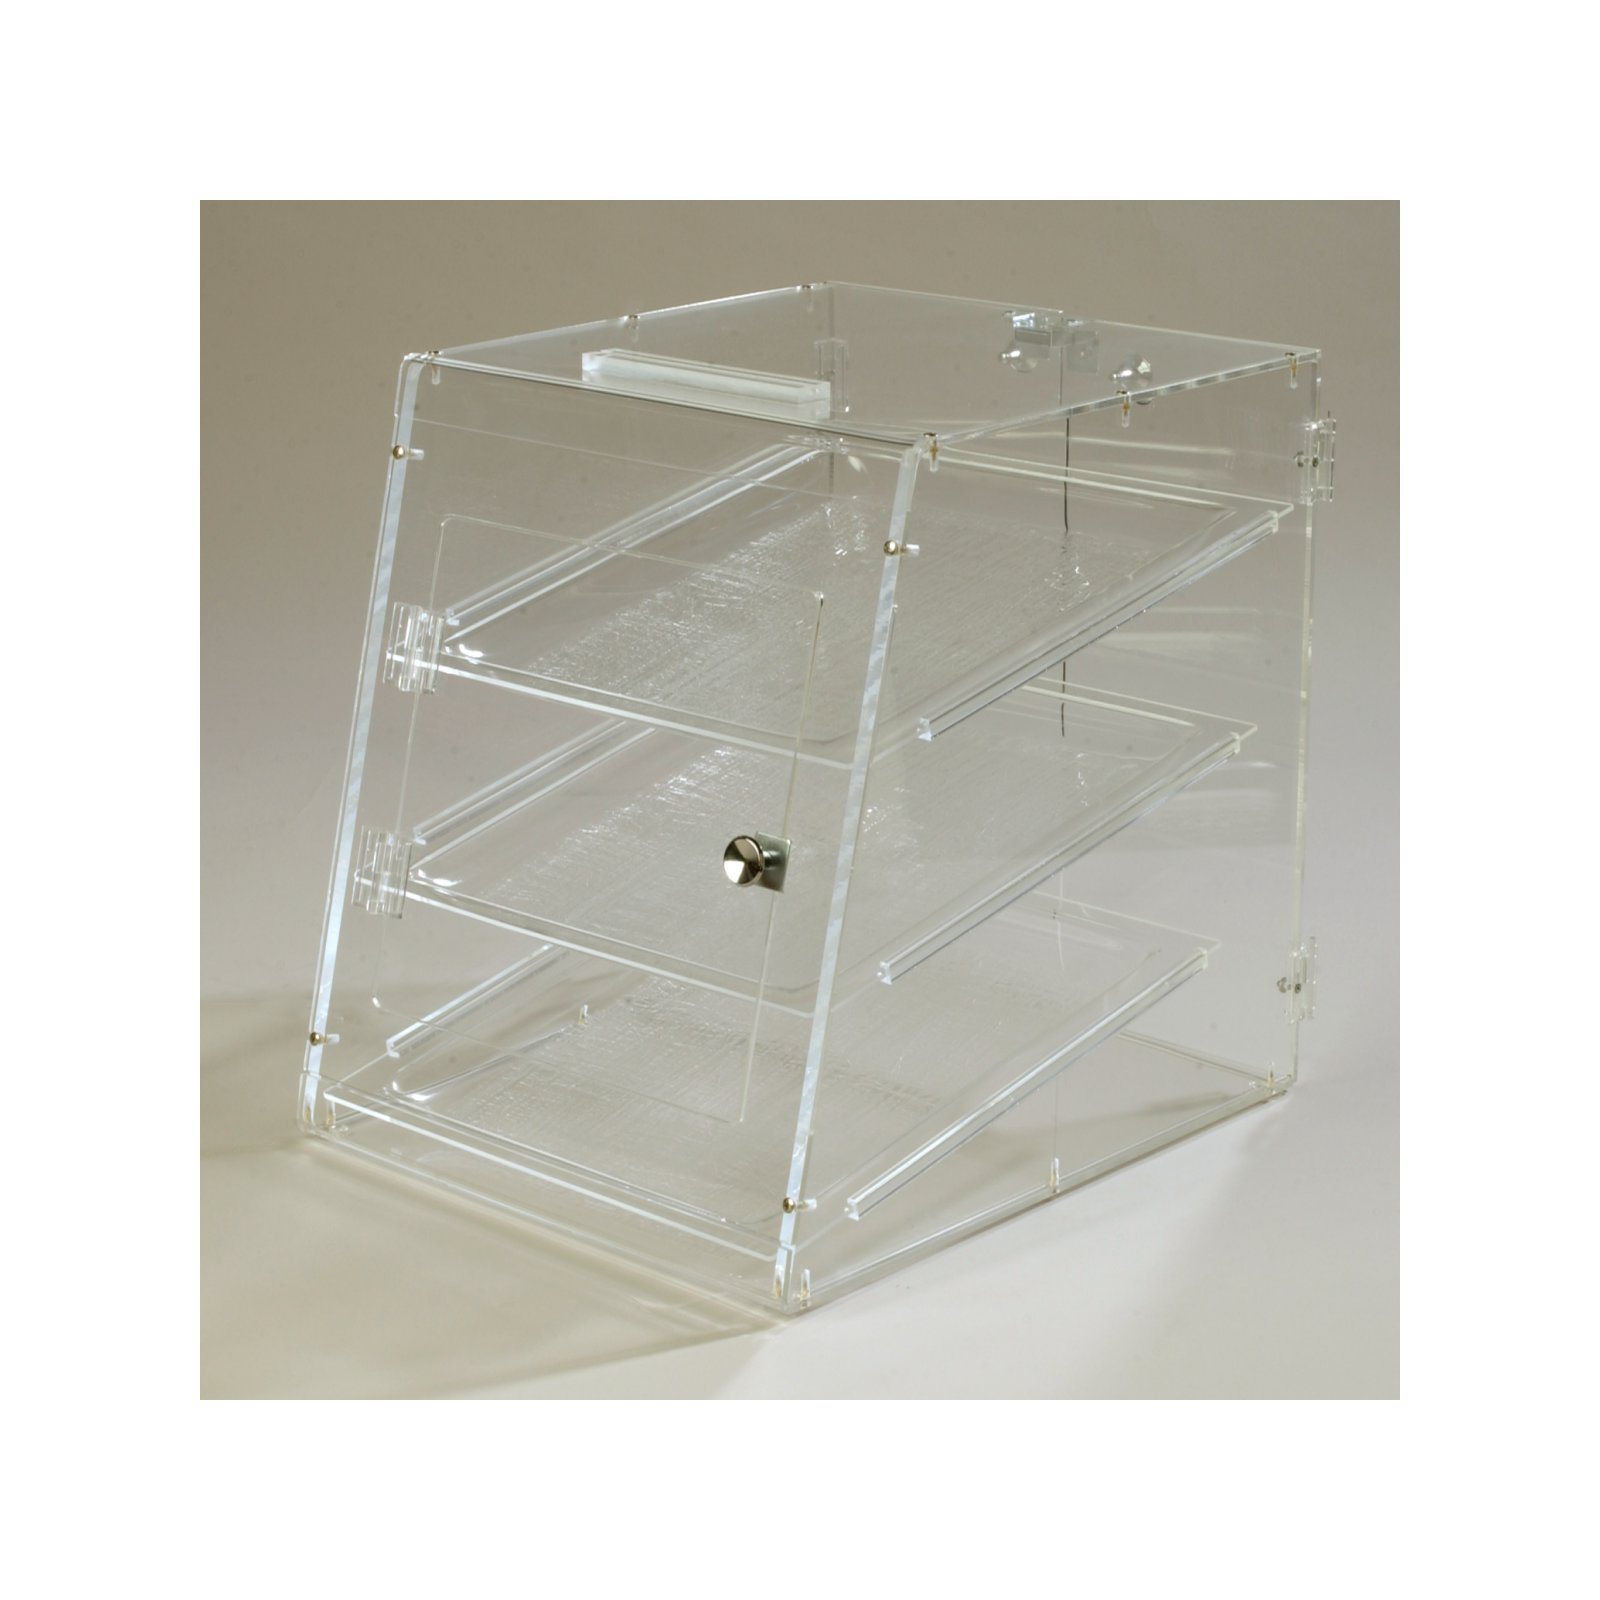 SPD303KD07 - Three Tray Self Serve Front And Back Door (Unassembled) - Clear  sc 1 st  Carlisle FoodService Products & SPD303KD07 - Three Tray Self Serve Front And Back Door (Unassembled ...